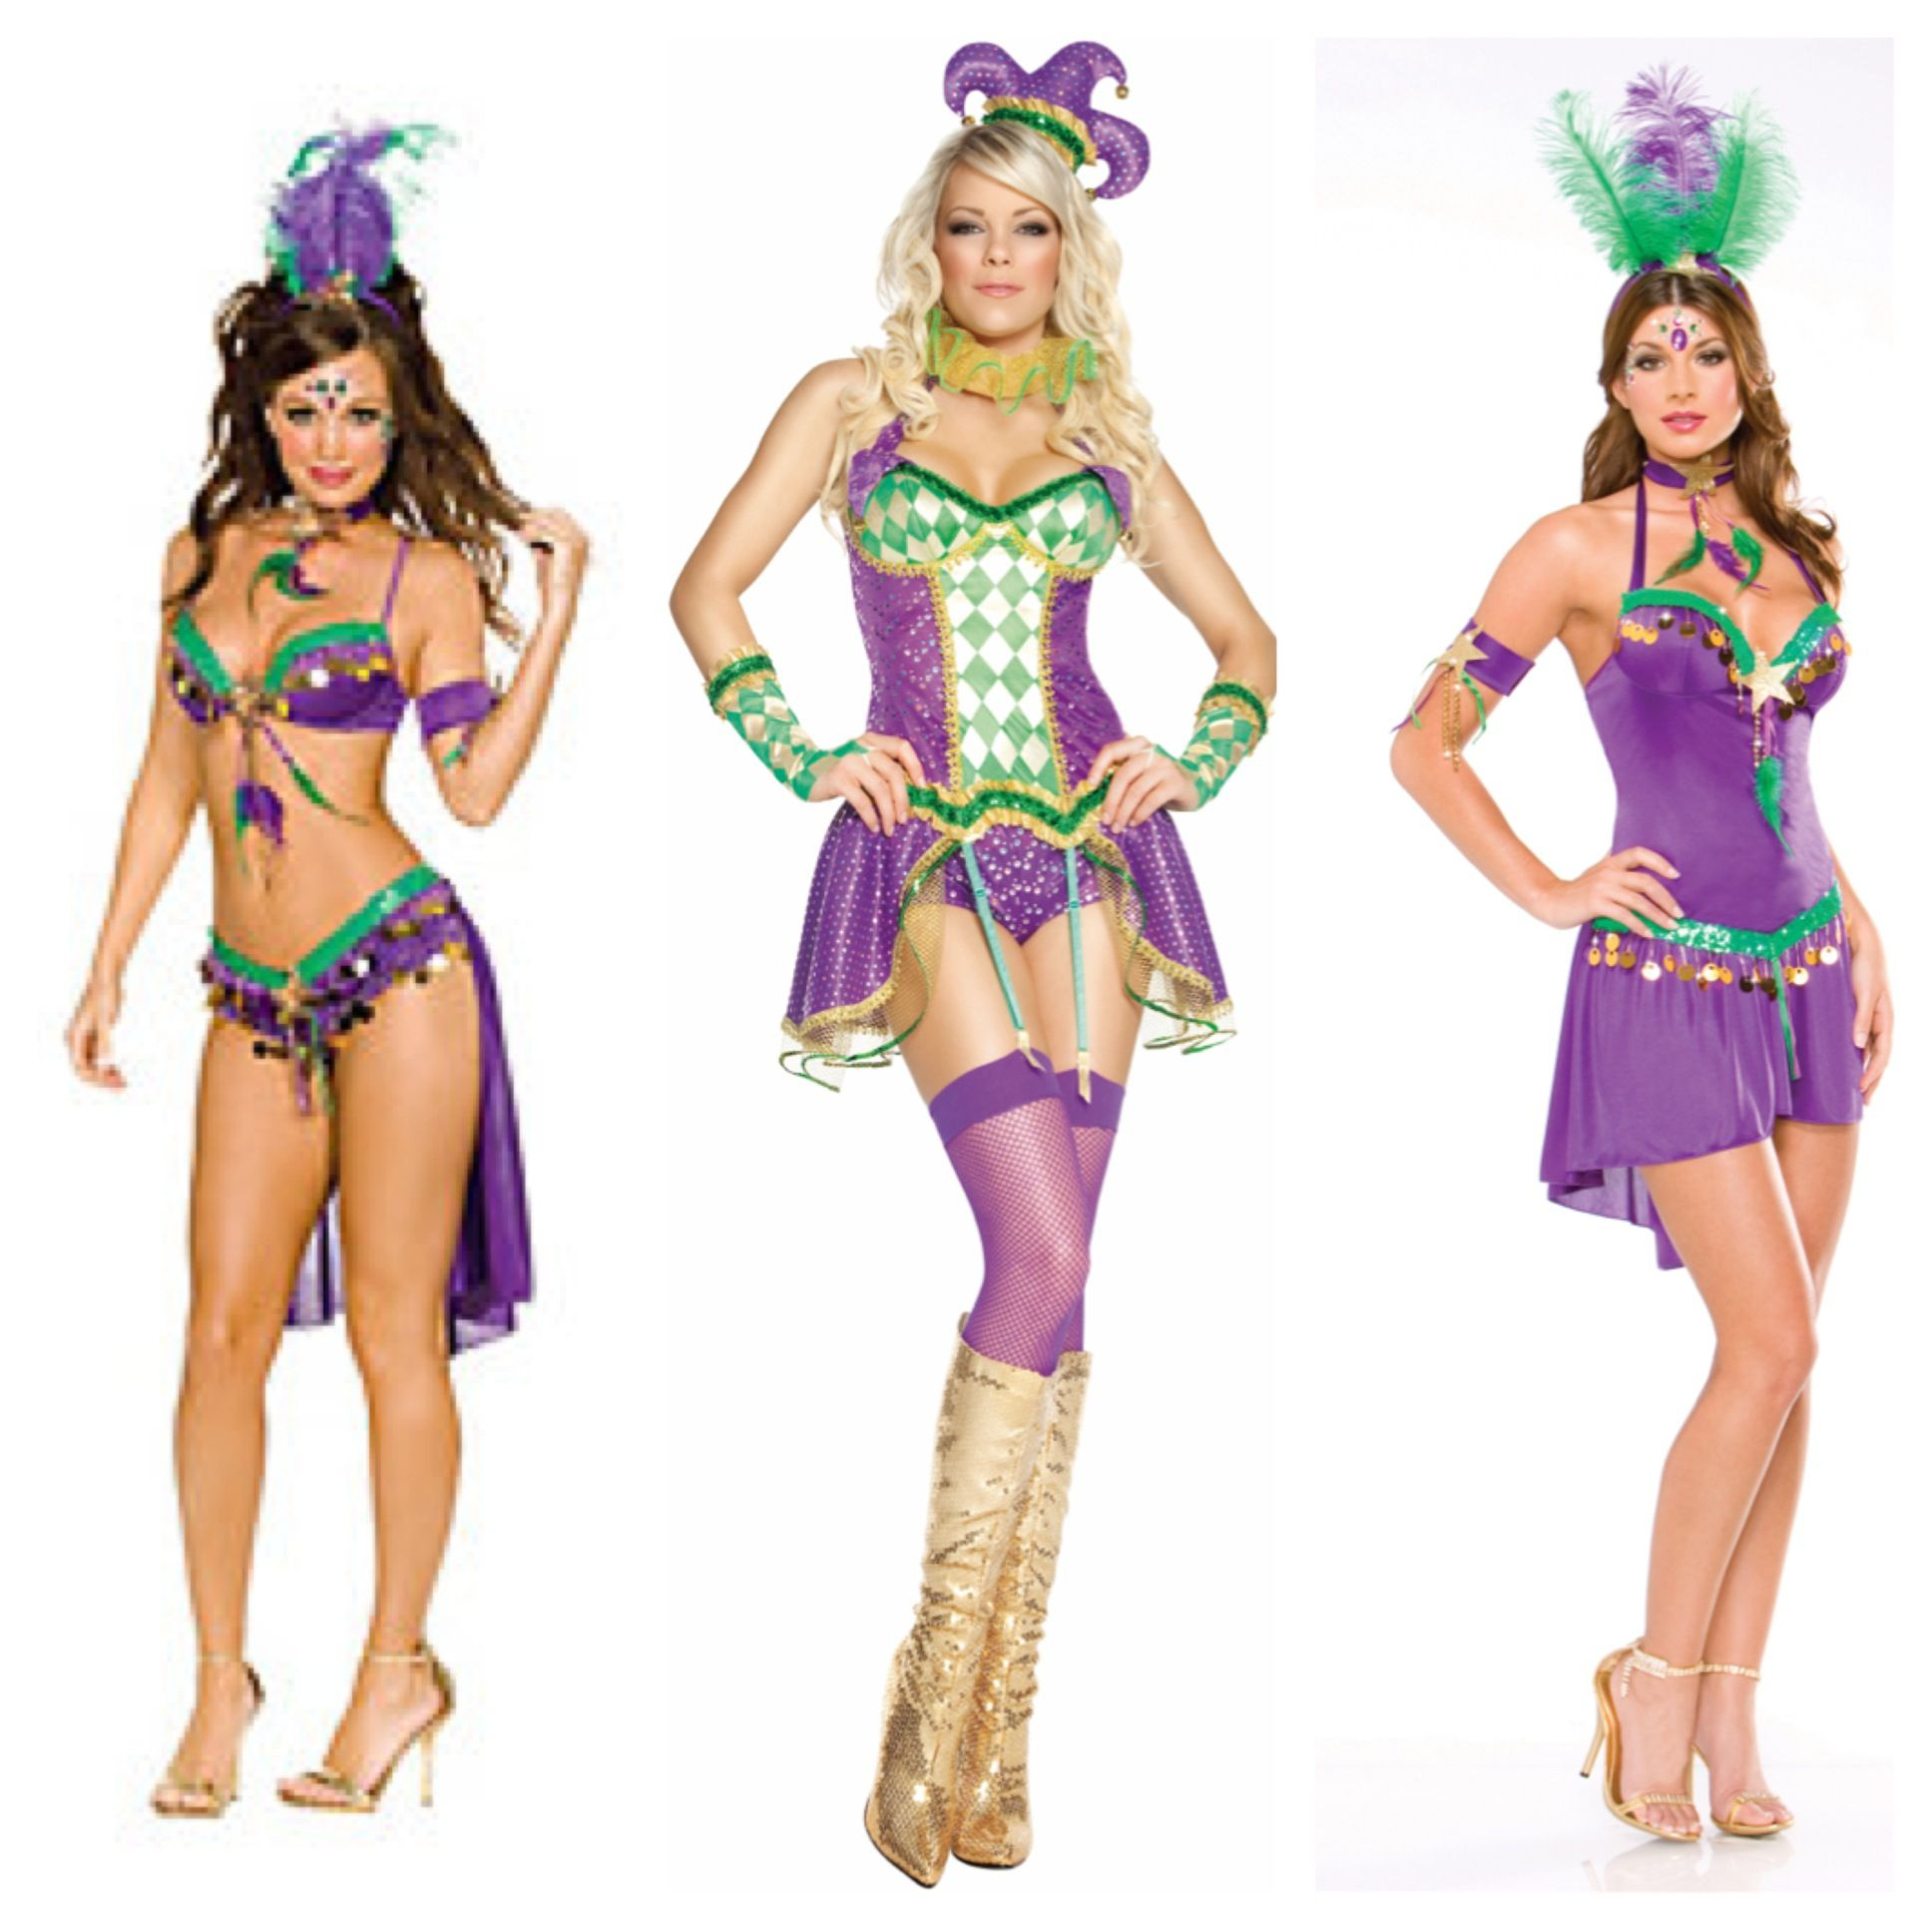 10 Fashionable Mardi Gras Costume Ideas For Women mardi gras costumes like the idea of a belt with charms and maybe